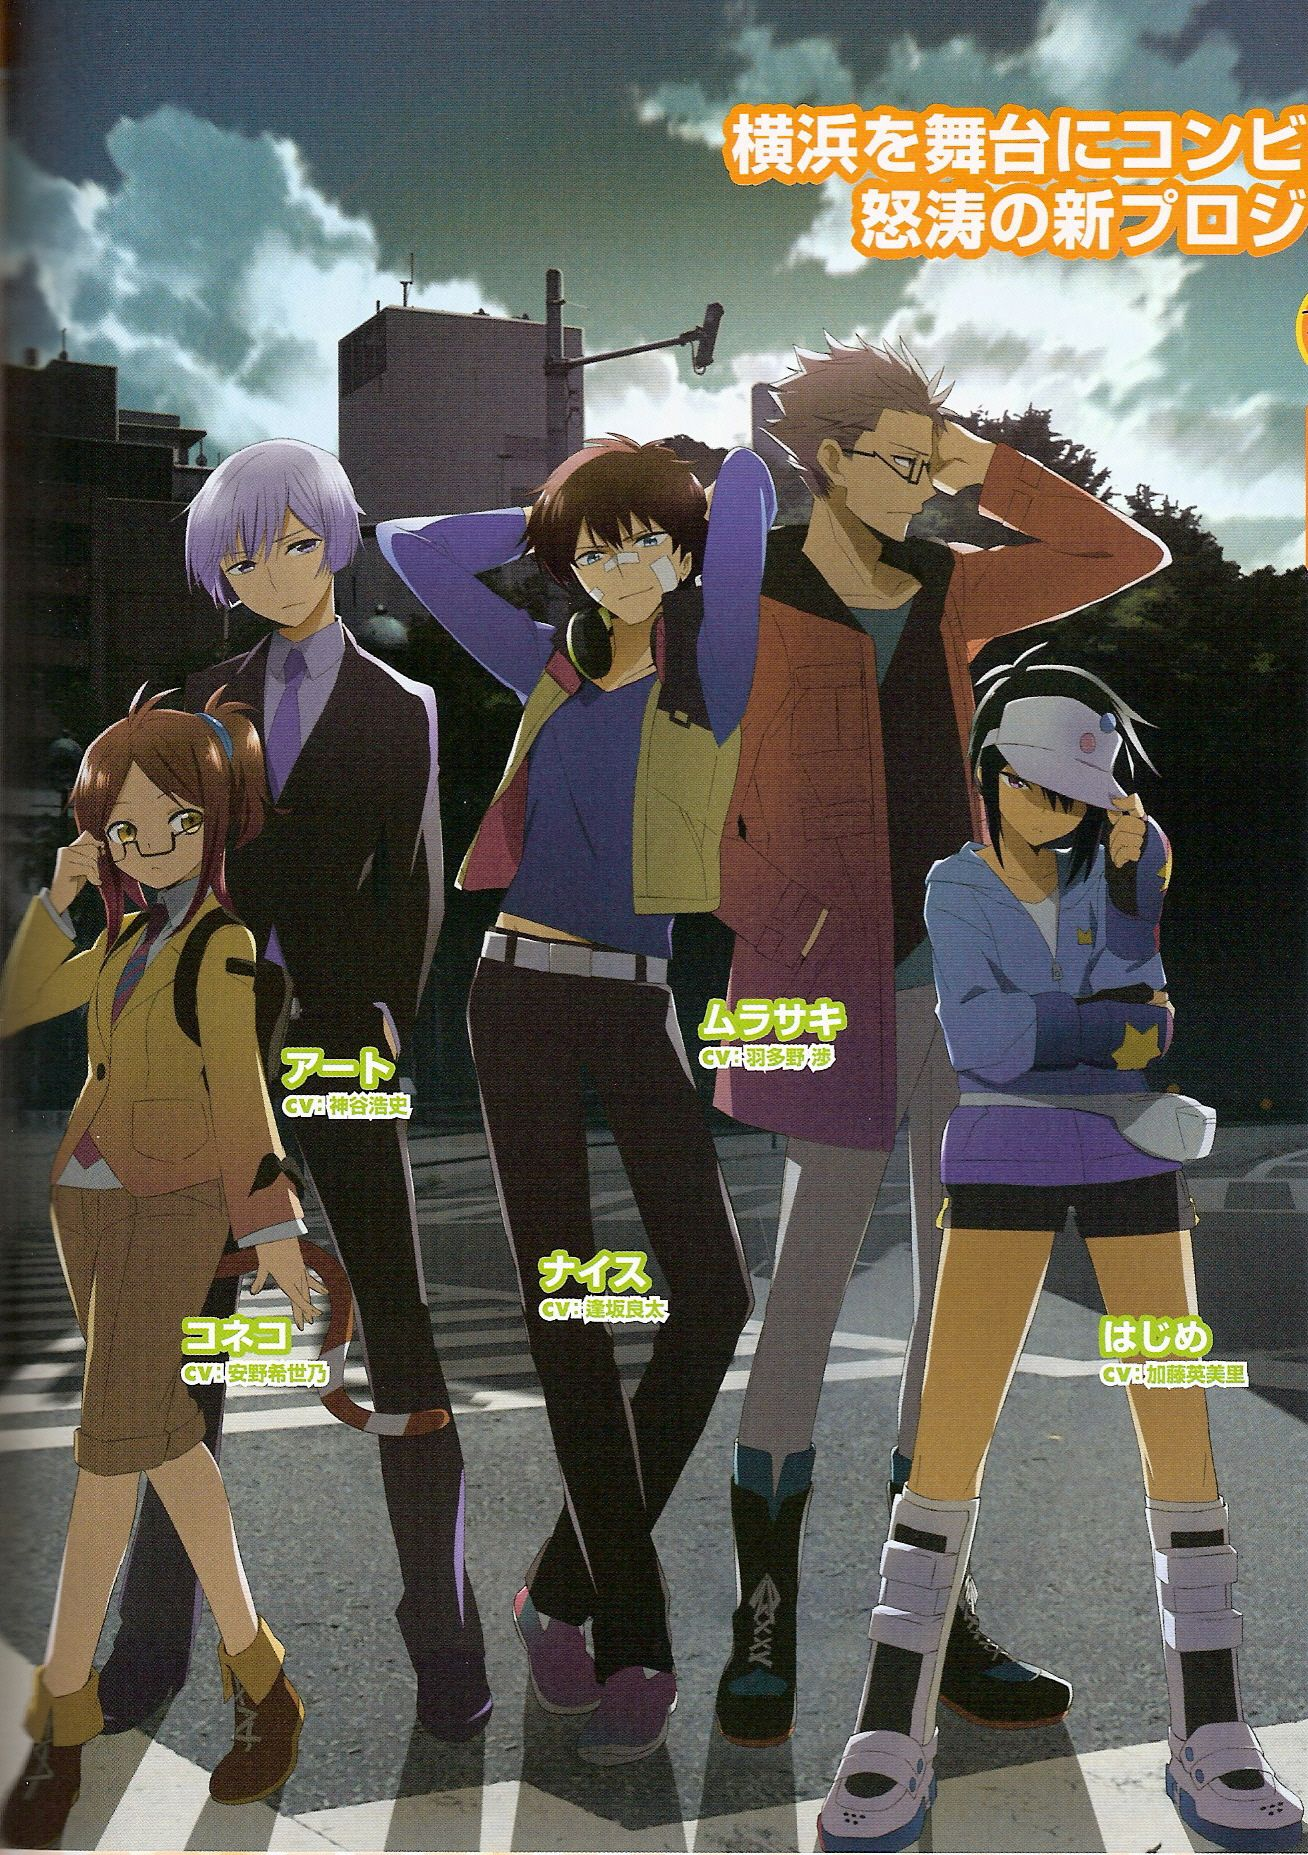 Pin by *Anisazu * on Re Hamatora (With images